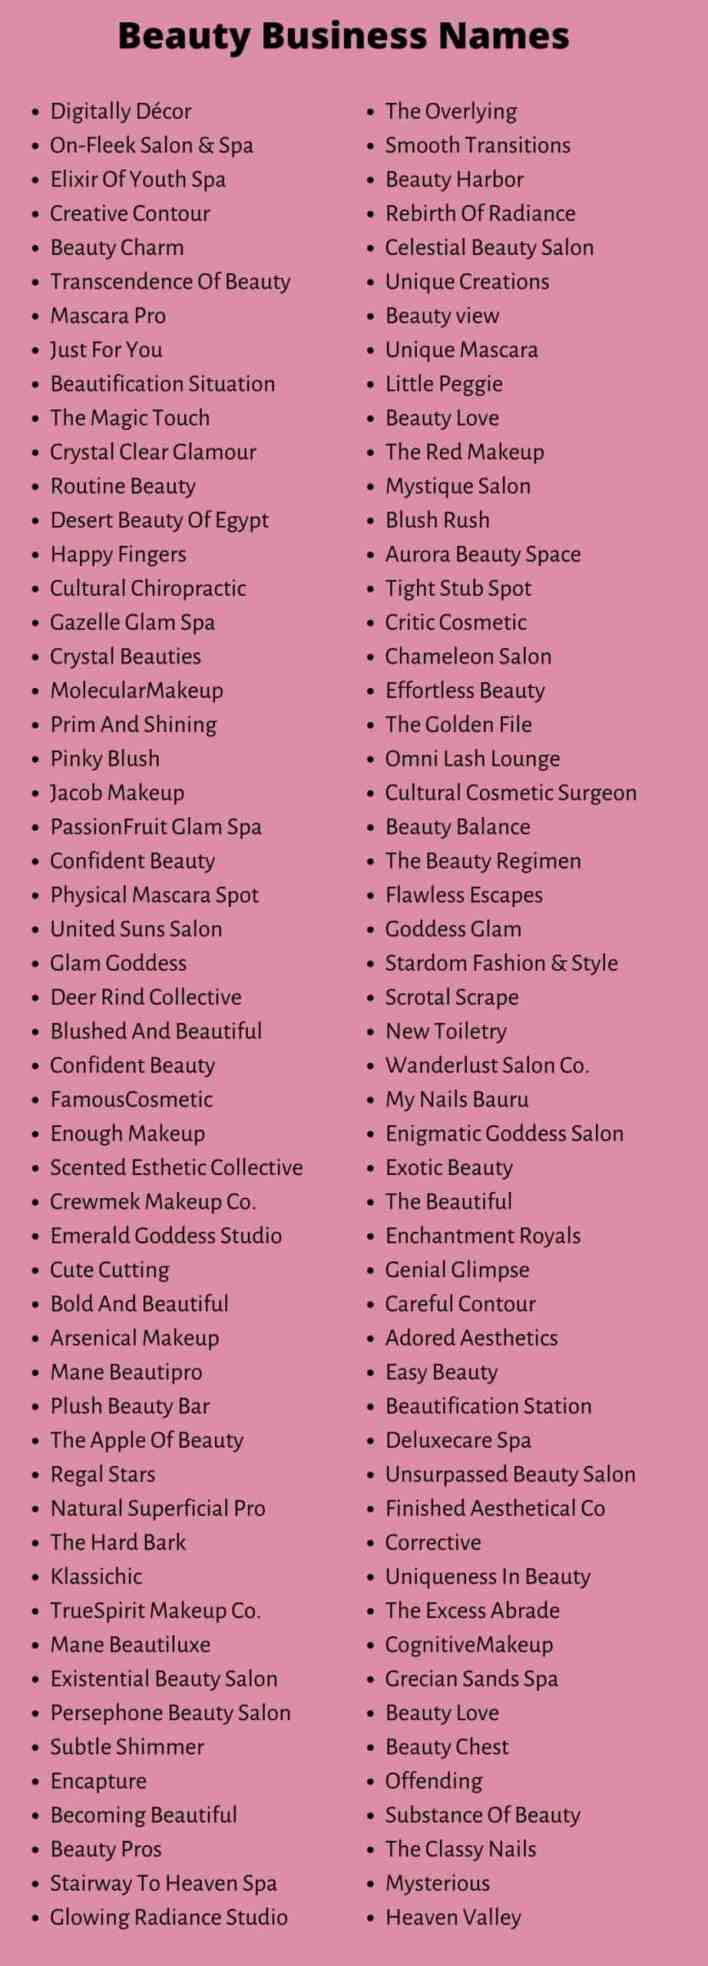 Beauty Business Names